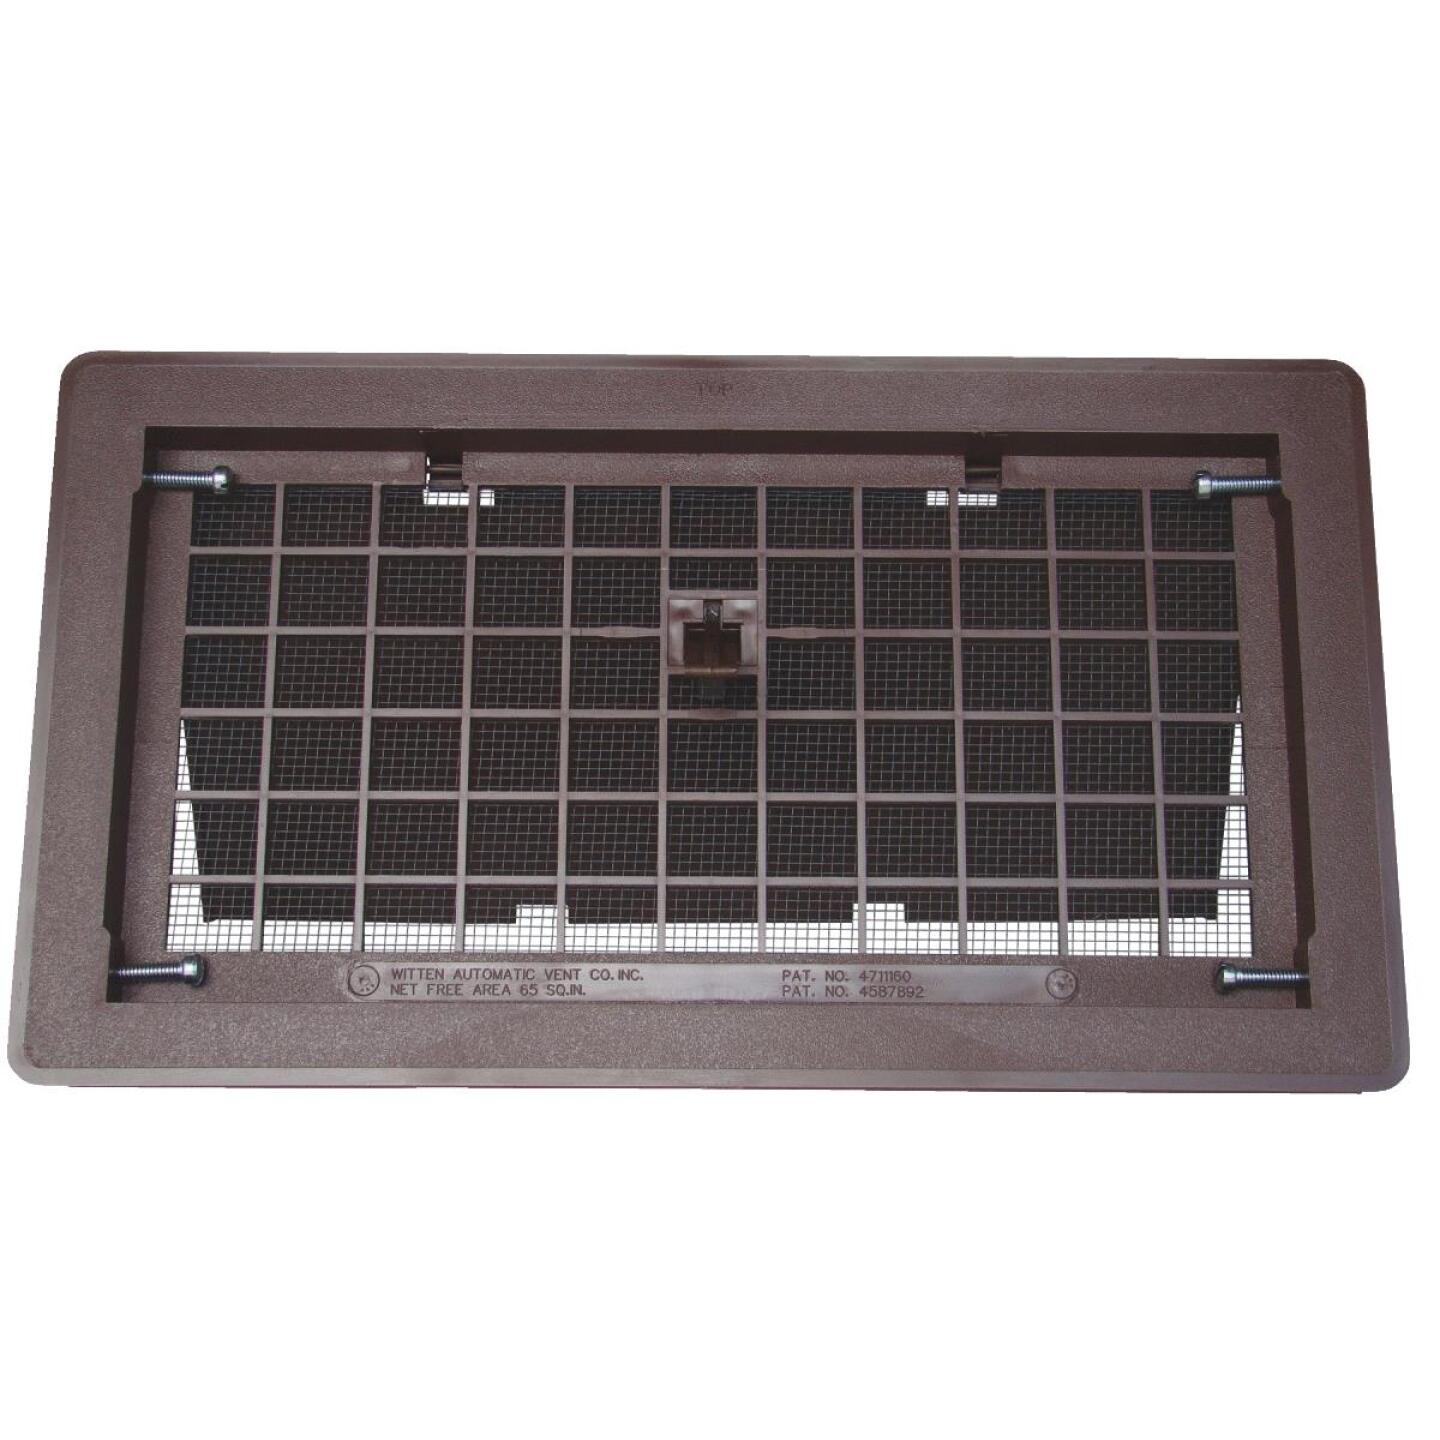 Witten 8 In. x 16 In. Brown Manual Foundation Vent with Damper Image 1